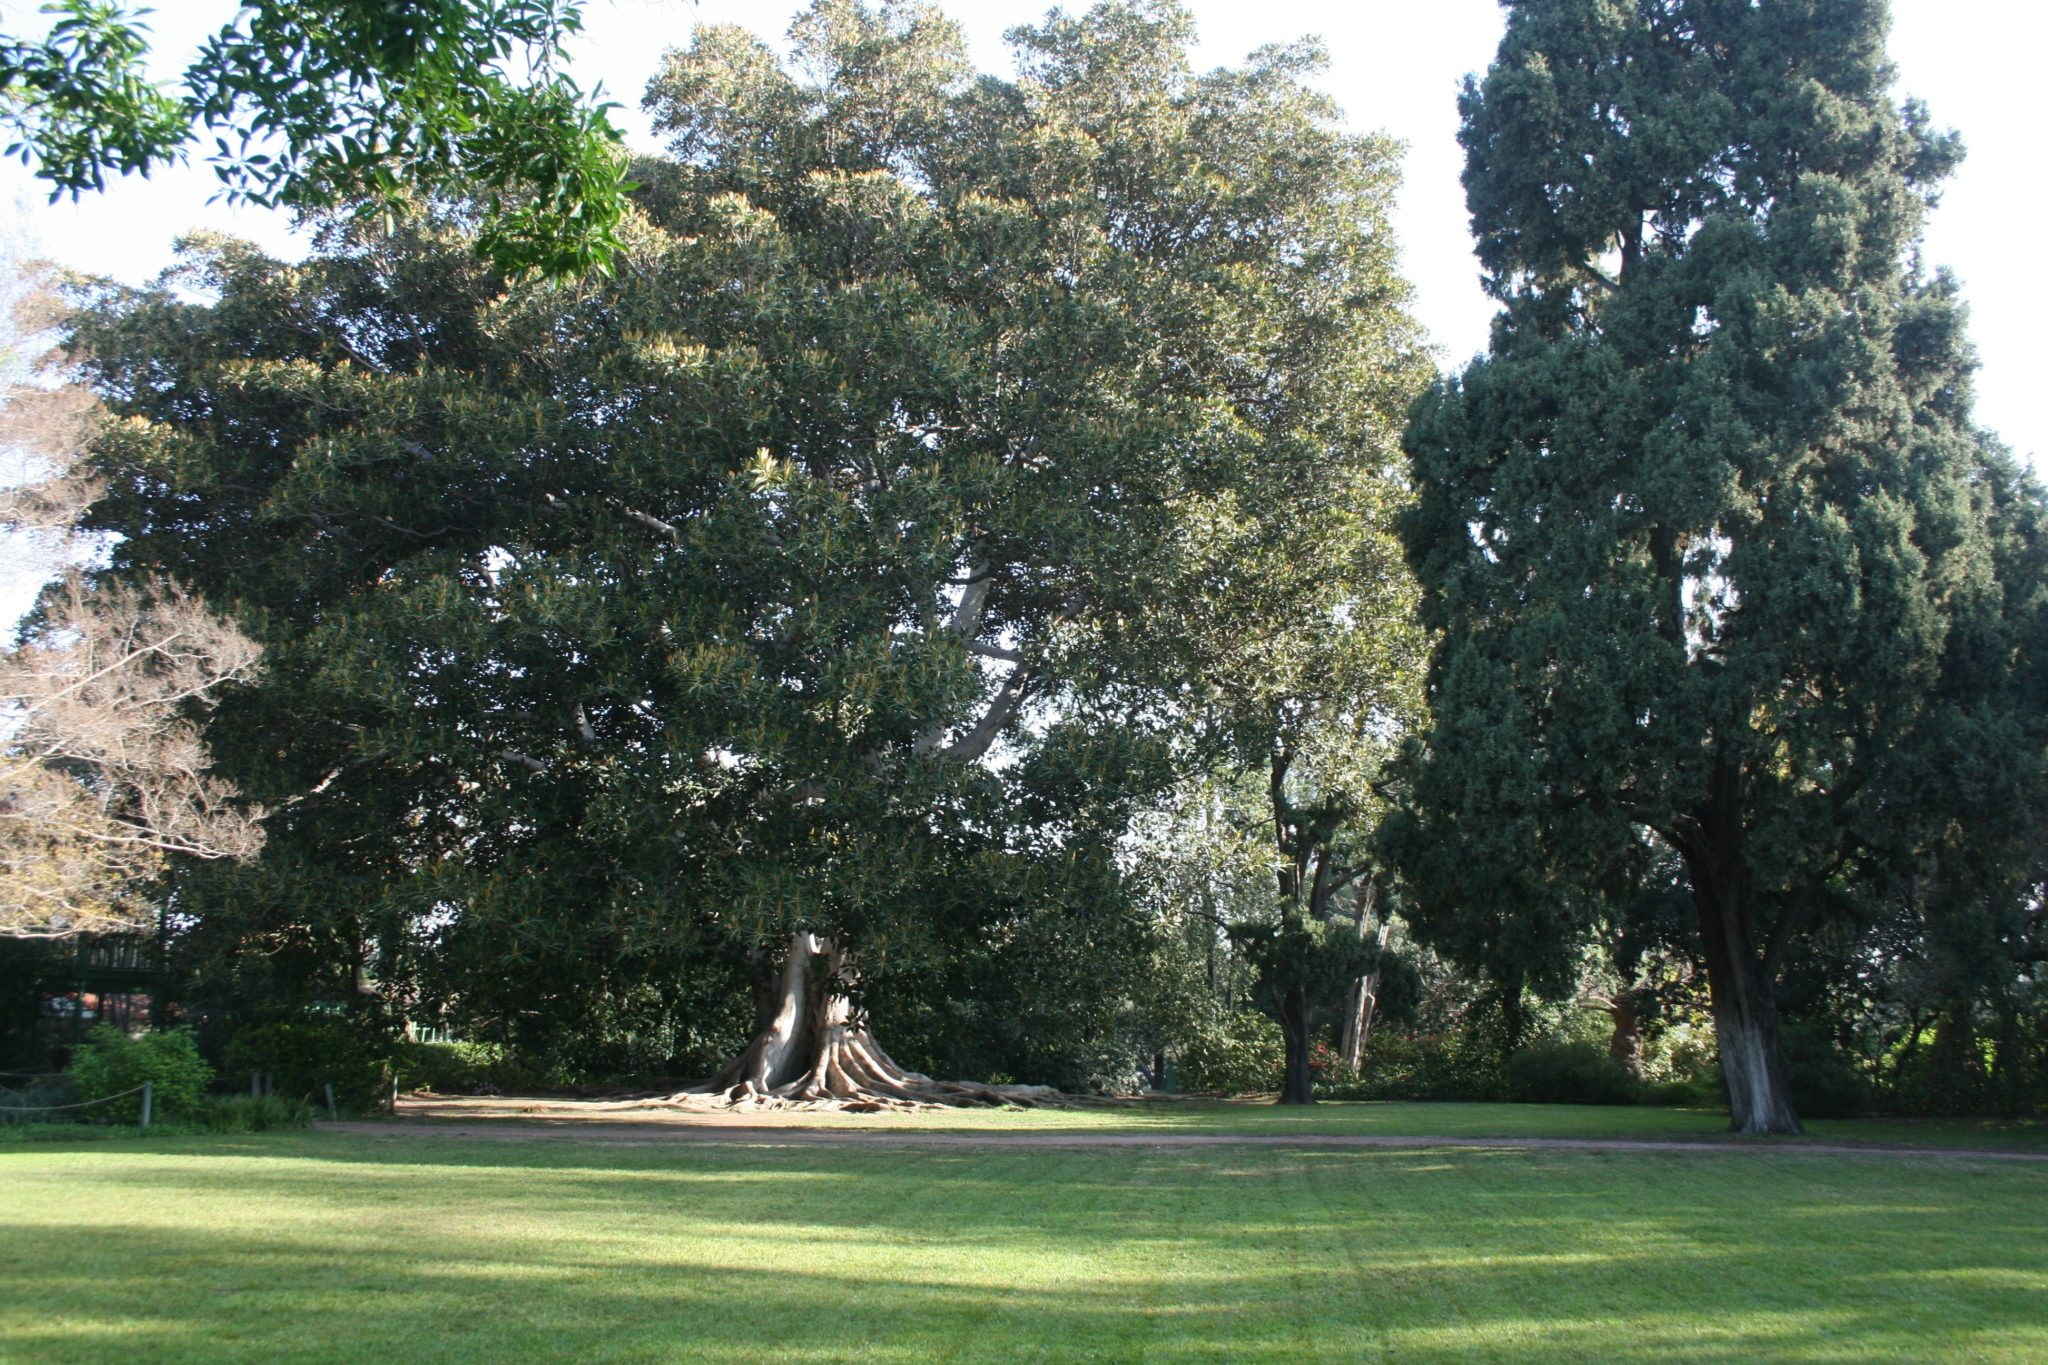 Ficus Macropulla - Moreton Bay Fig